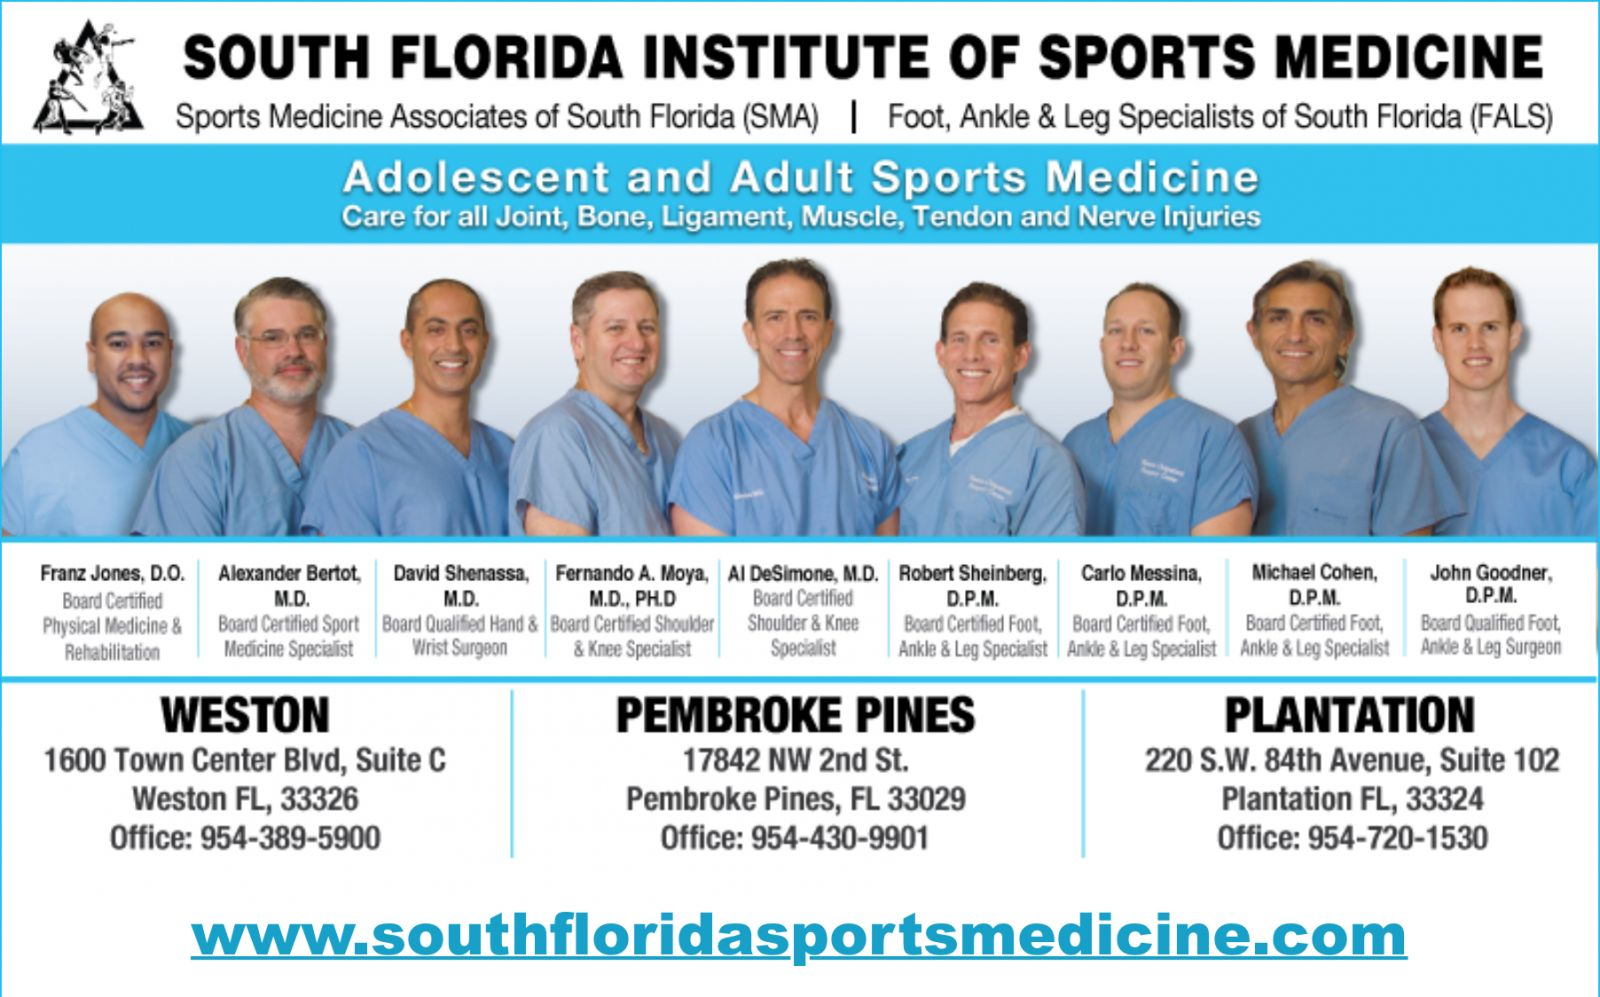 South Florida Institute of Sports Medicine - Podiatry, Orthopedics, & Physical Therapy